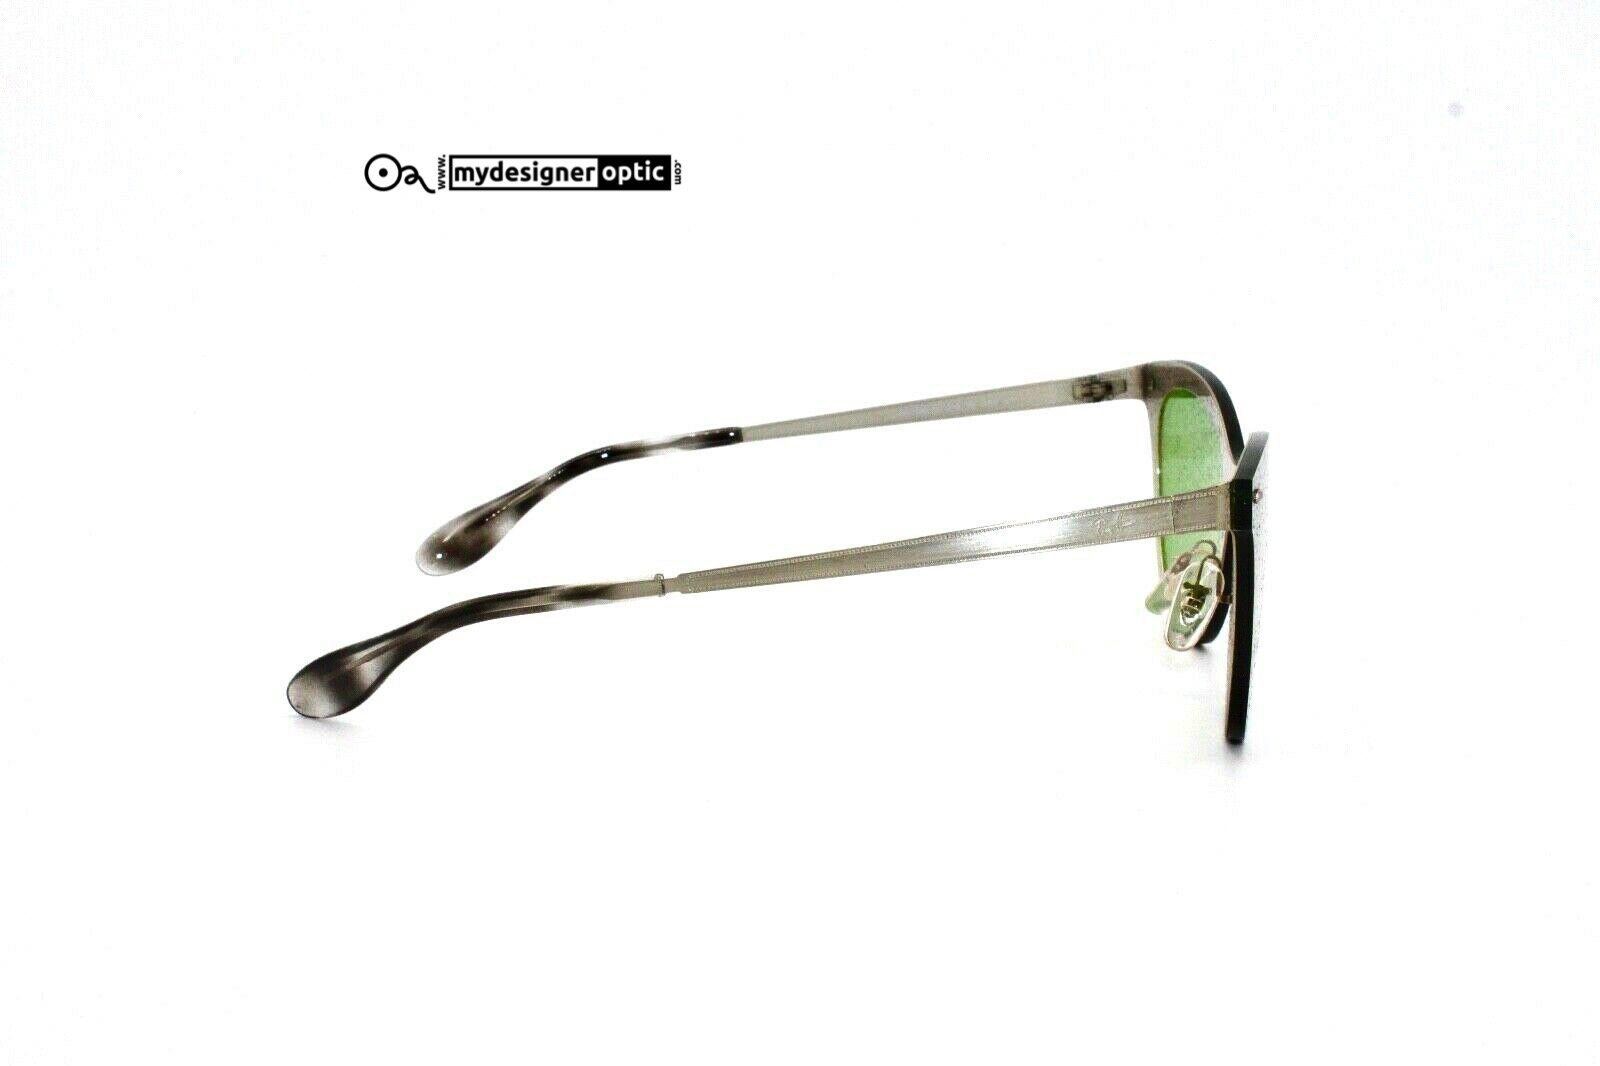 Ray Ban Sunglasses RB 3580-N 043/71 140 3N Made in Italy - Mydesigneroptic